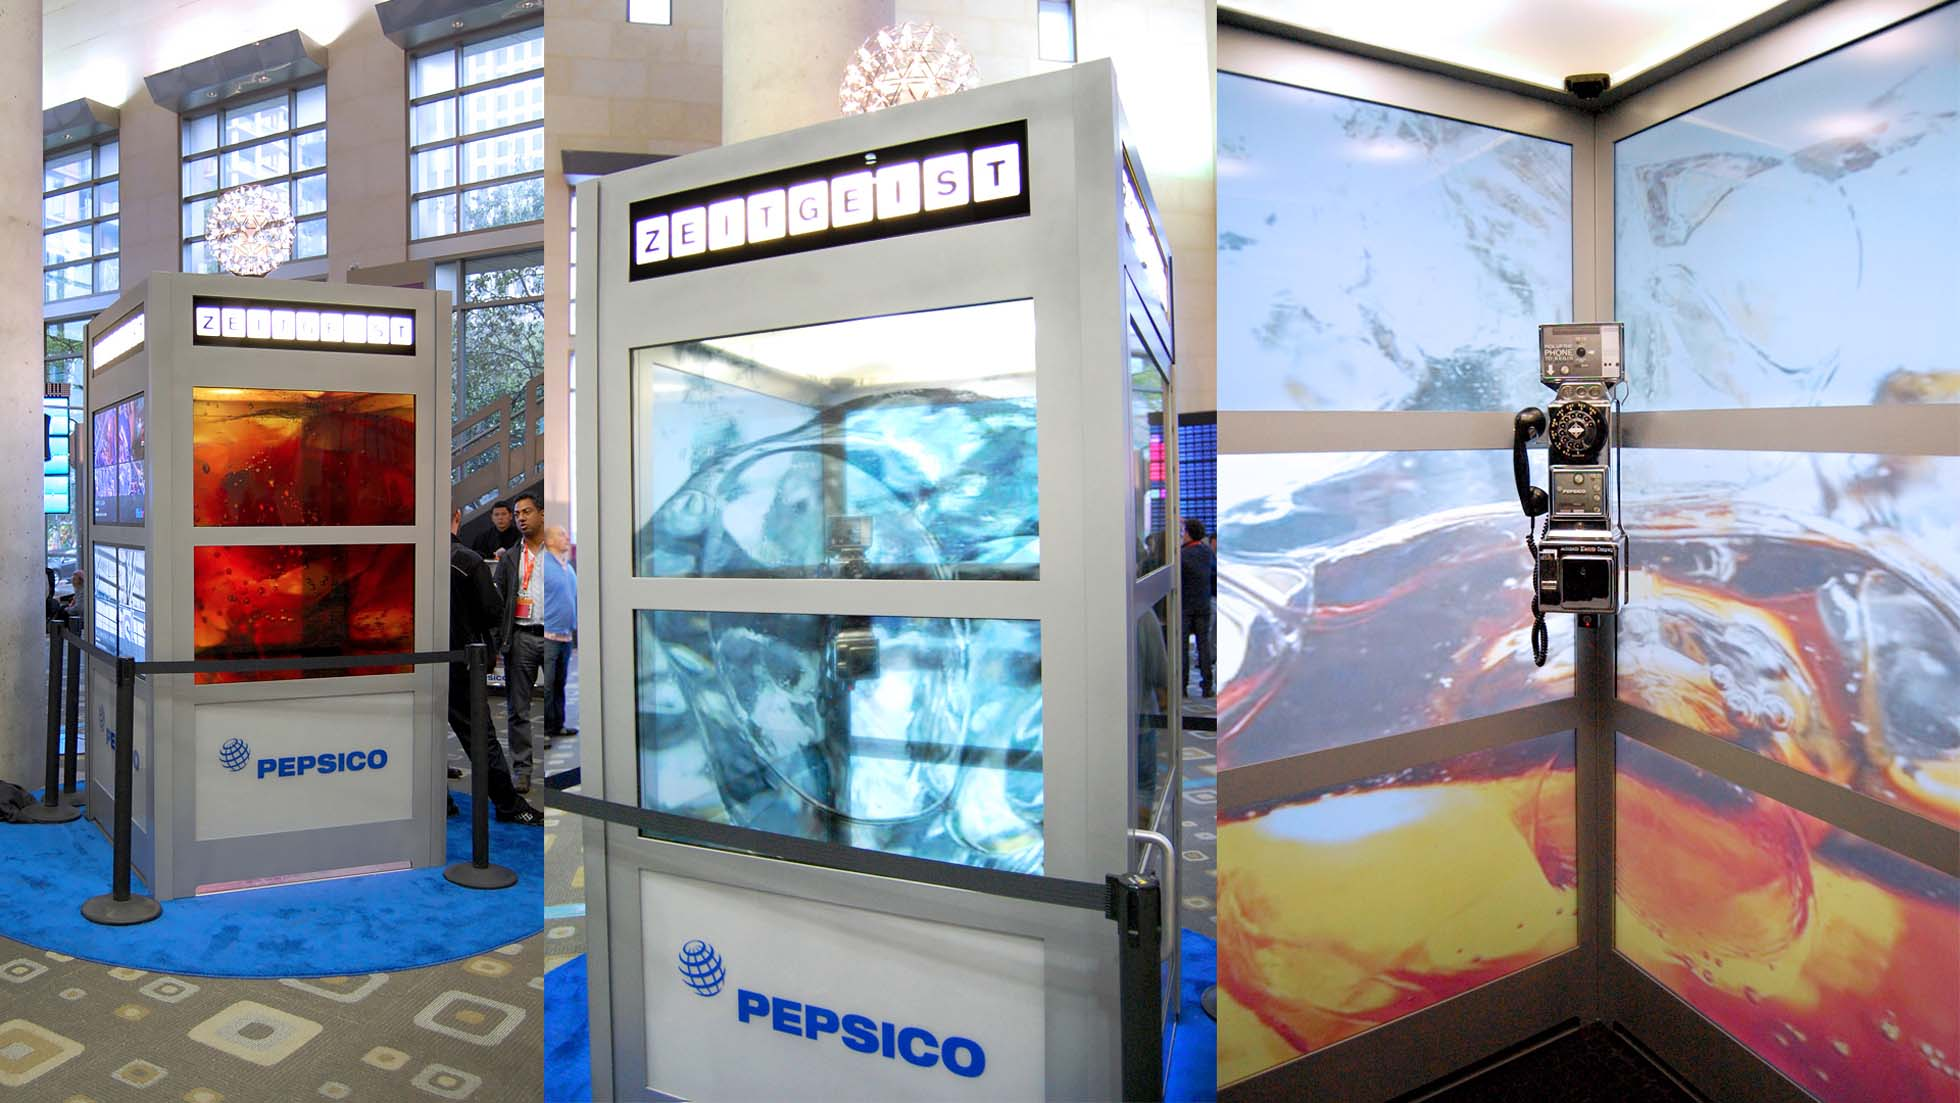 Iontank - PepsiCo Central at SXSW